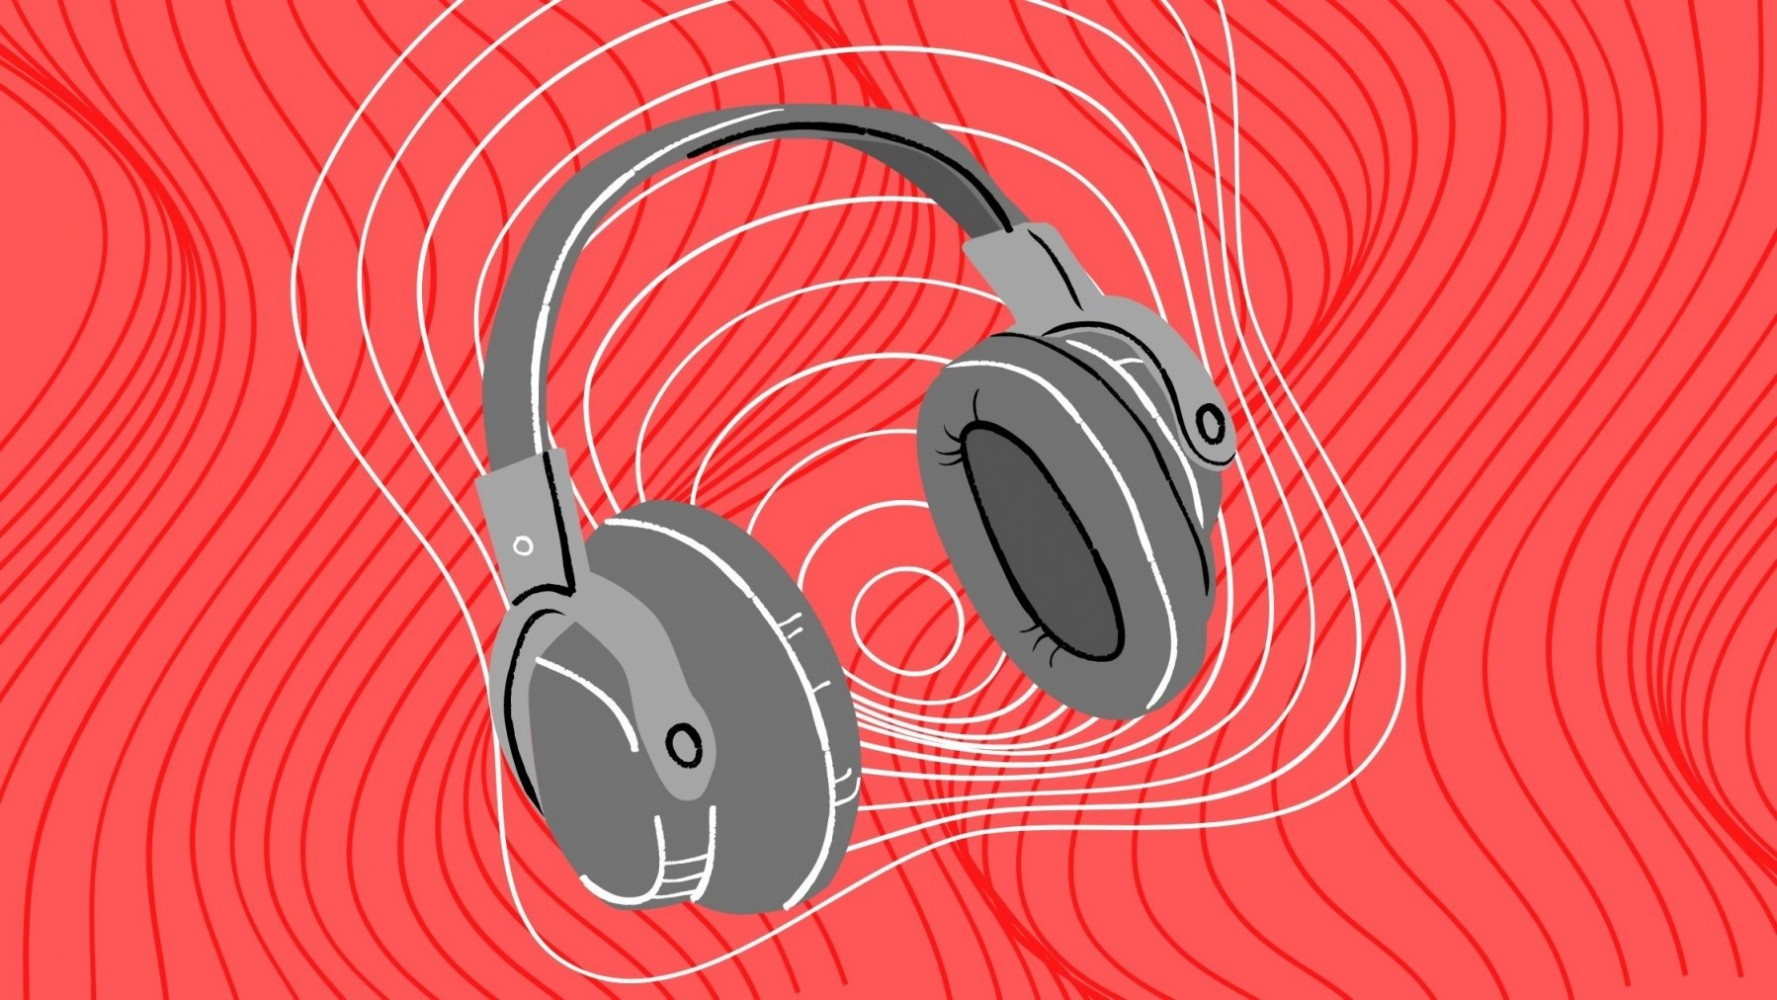 Headphones surrounded by sound waves